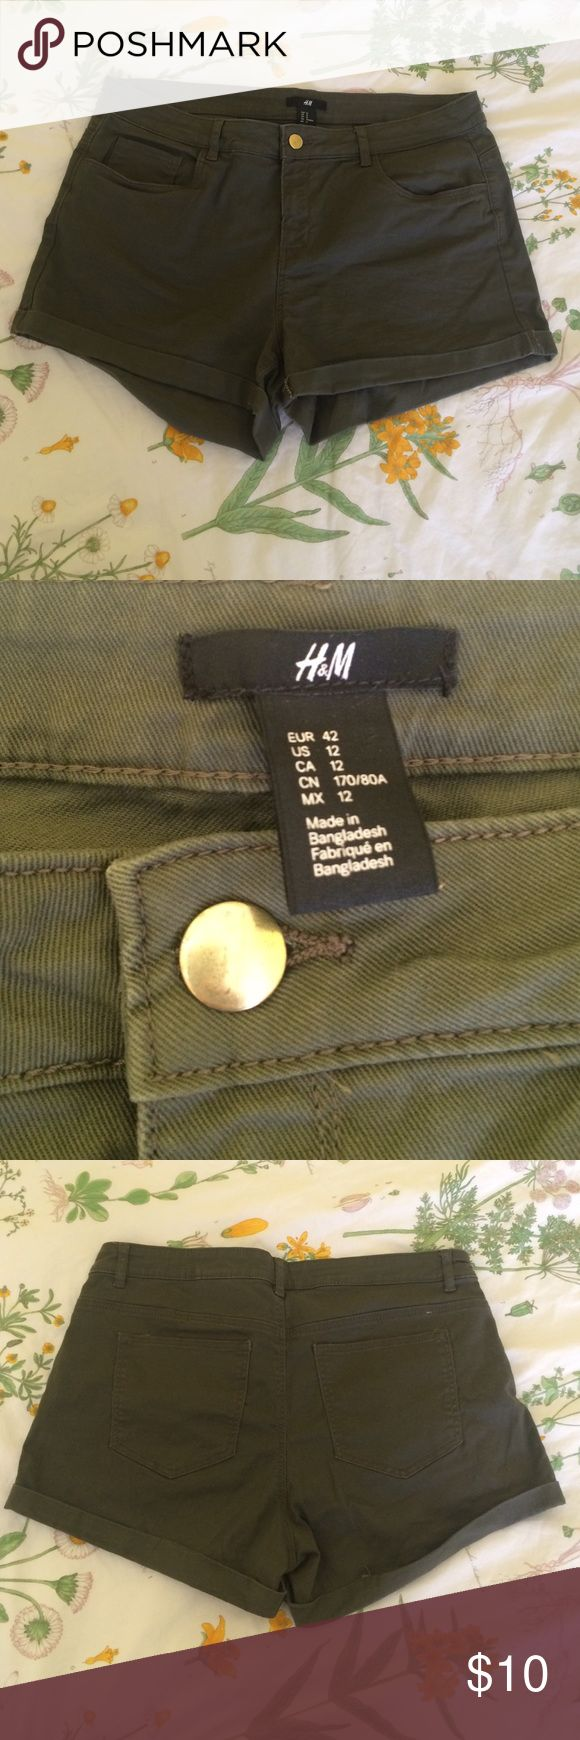 "H&M high-waisted olive green shorts size 12 These H&M shorts are an olive green and have never been worn! They are a size 12, high-waisted and the material had some stretch to them. The inseam measures at about 3"". H&M Shorts Jean Shorts"